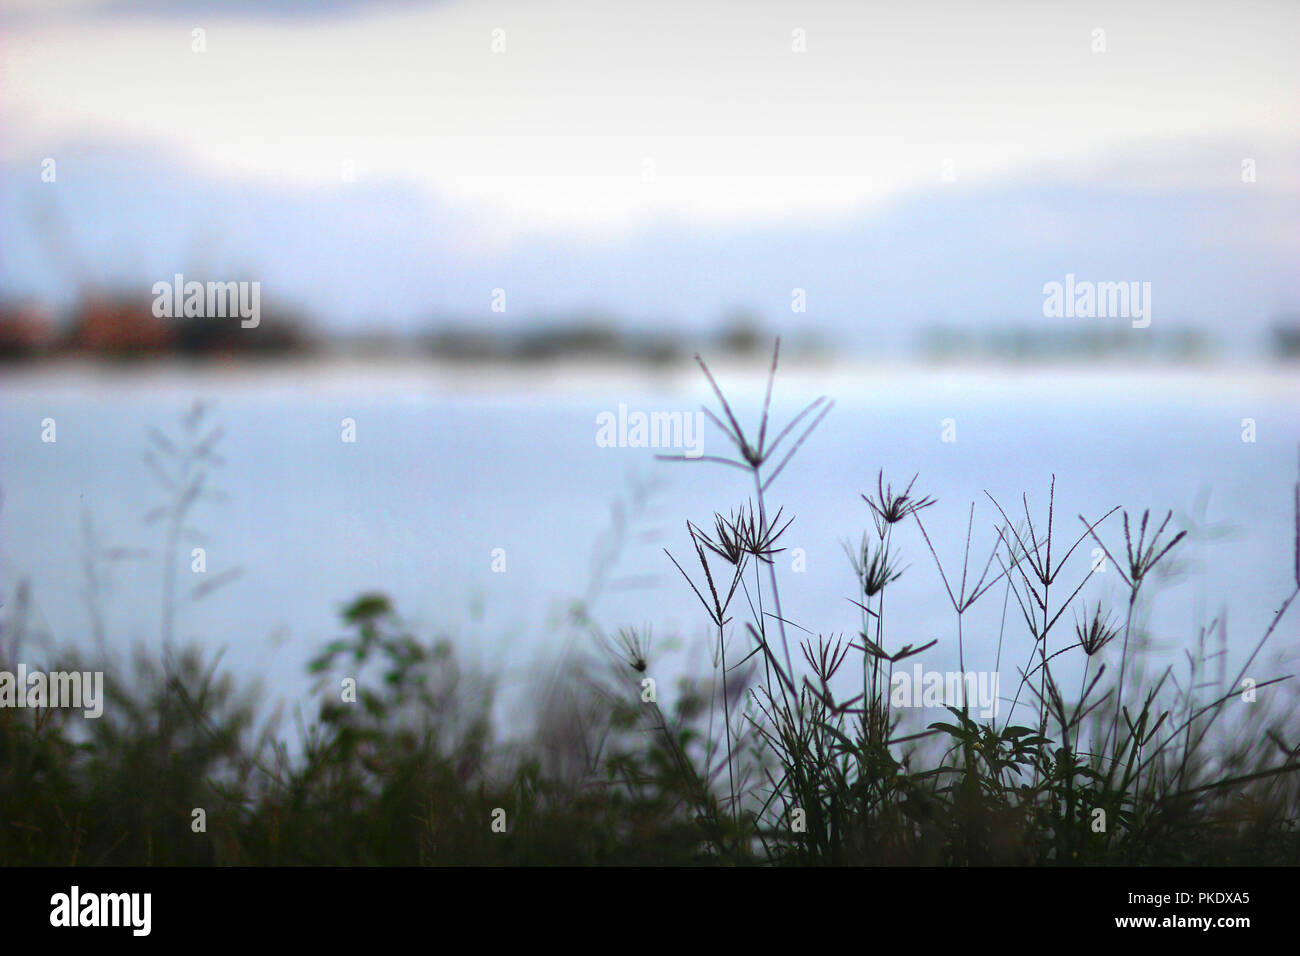 Malubog Lake in tranquil scene, Lake, River, Calm Water, Grass, blue, low depth of field, background, Asia, Philippines, Cebu Province, Mountains - Stock Image